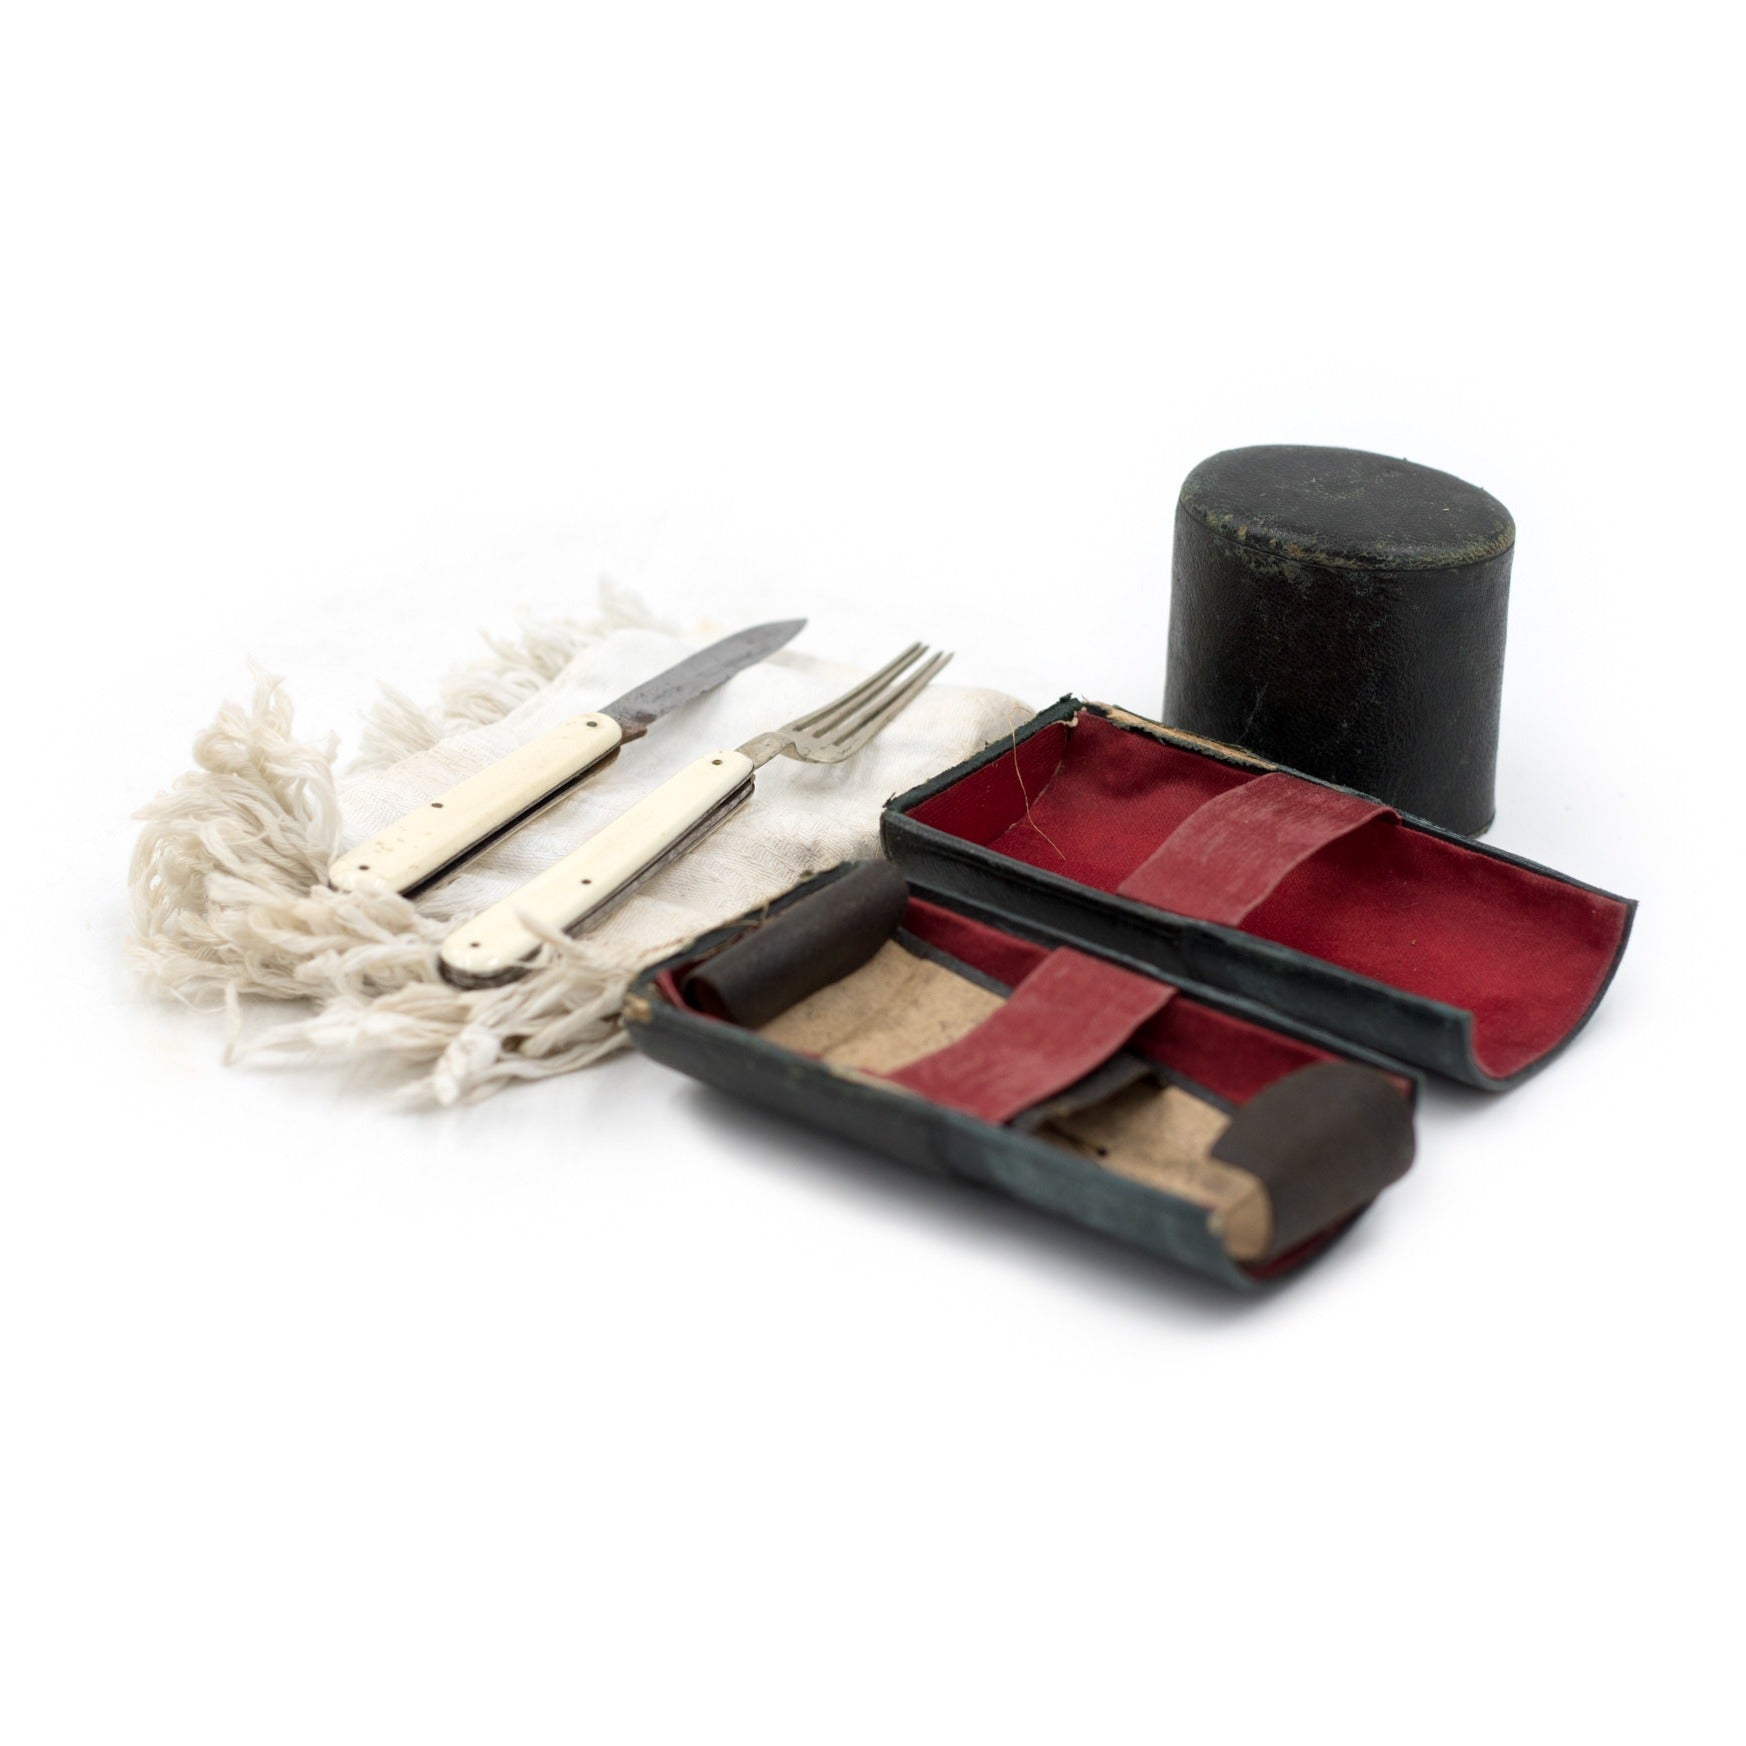 Picnic Utensil Set with Leather Case